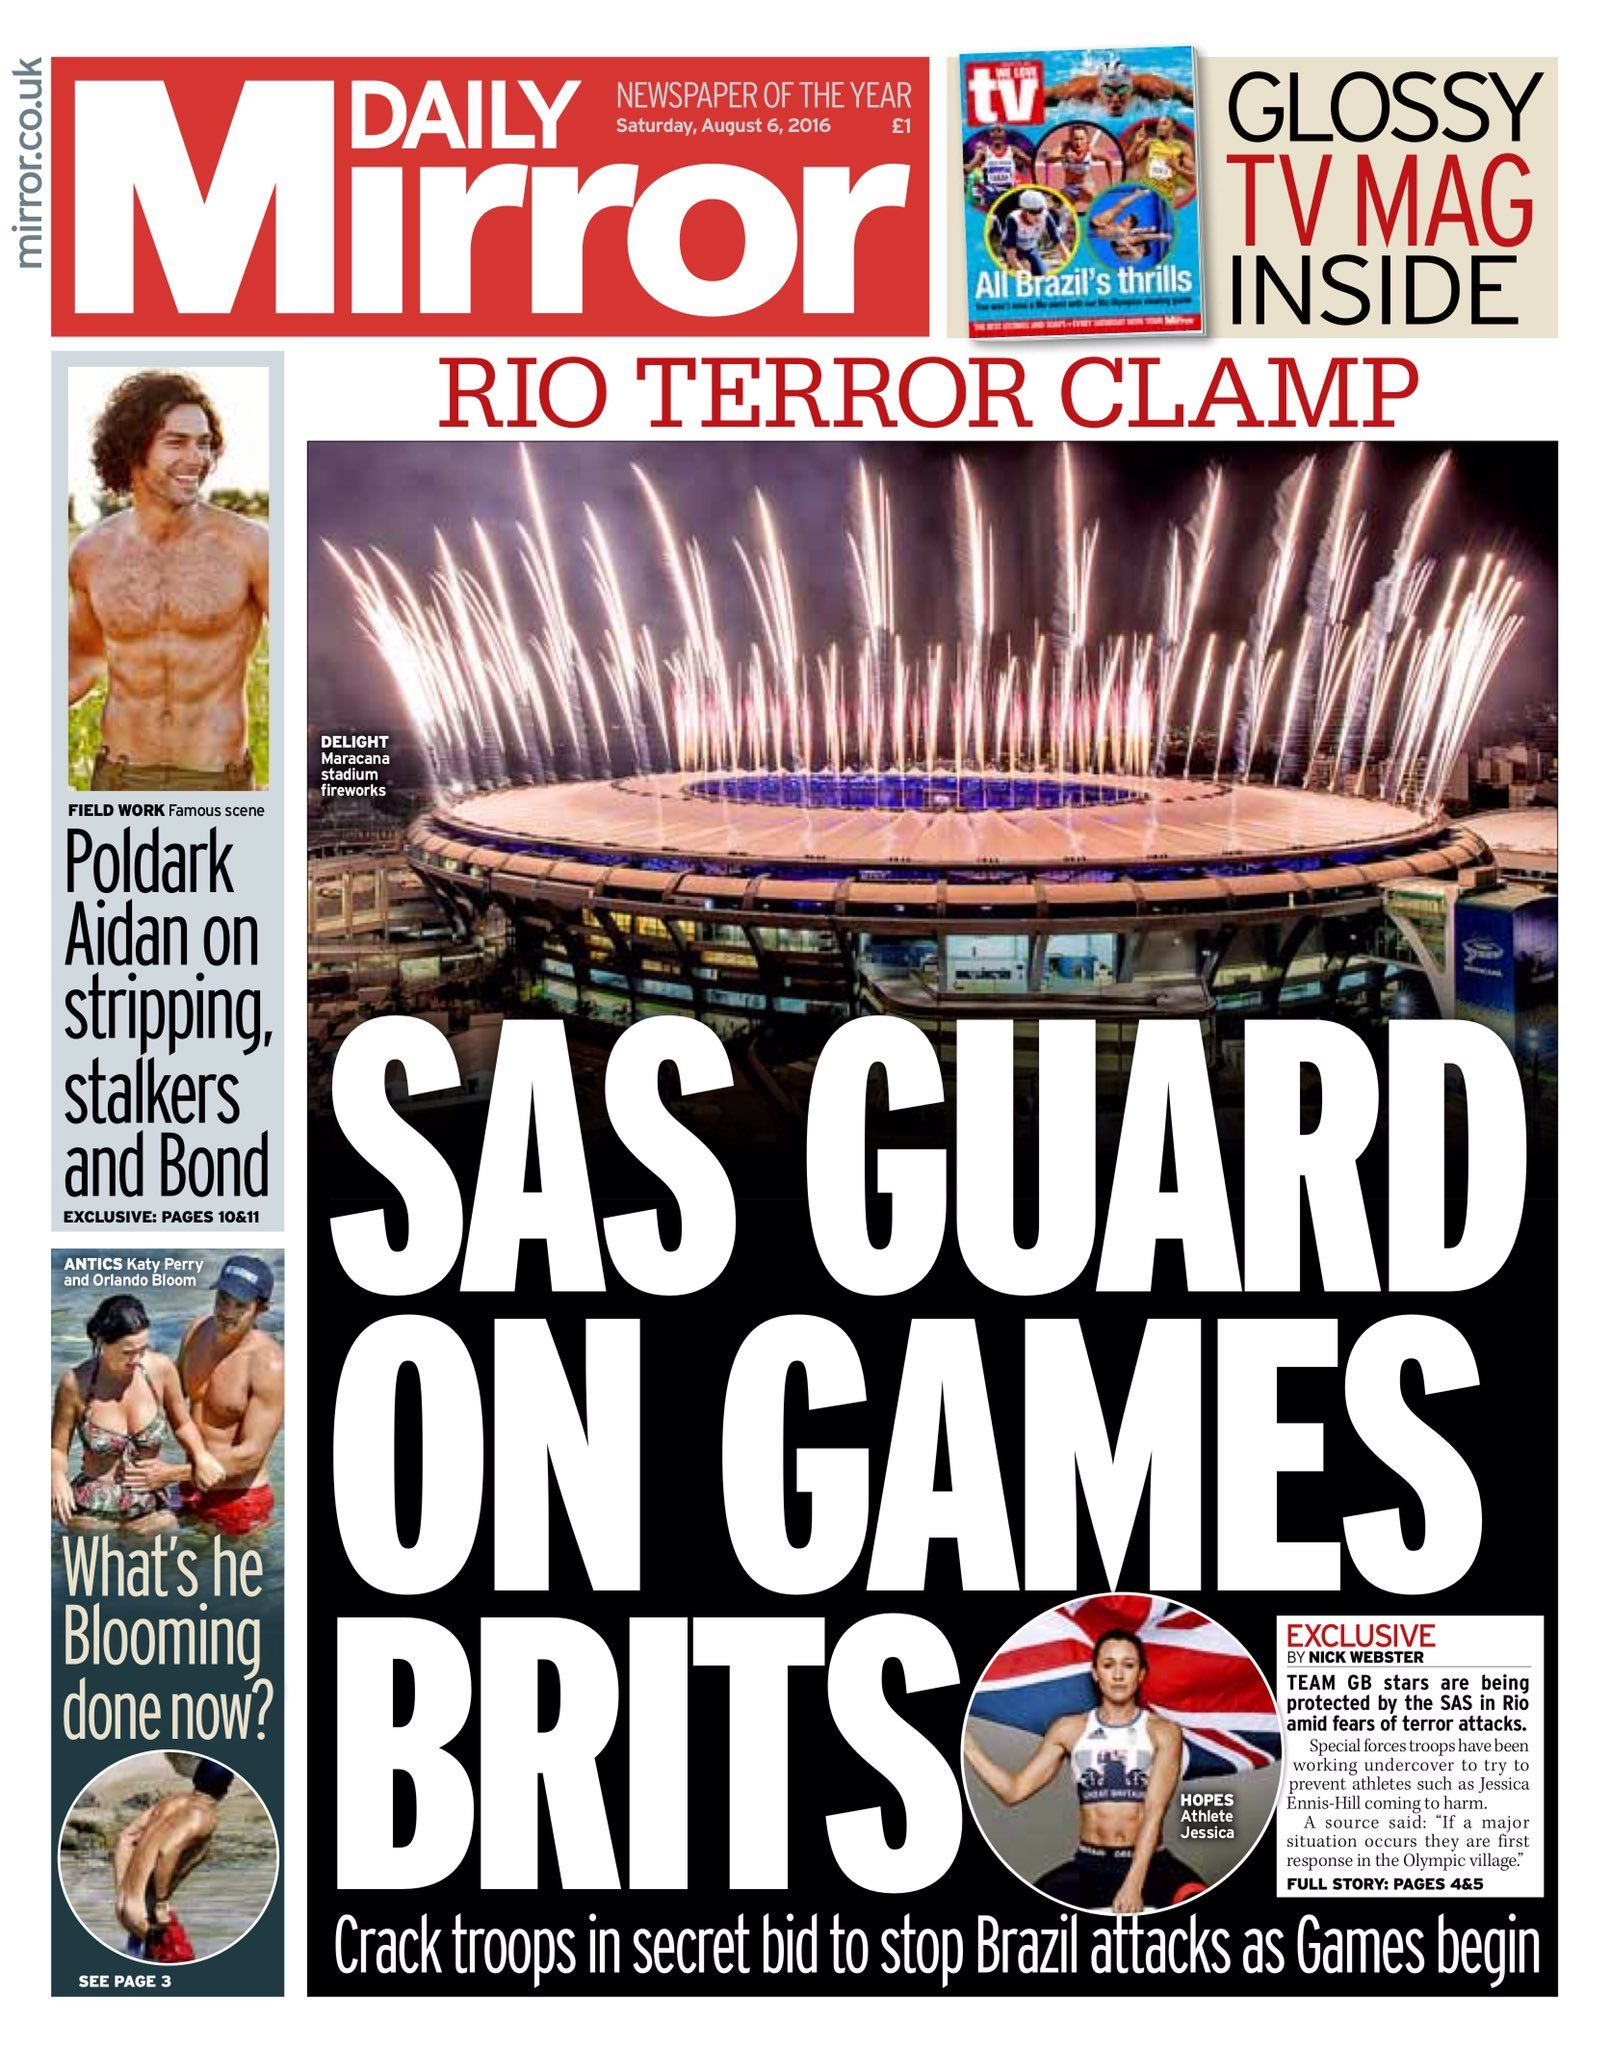 Saturday's Daily Mirror: SAS guard on Games Brits #tomorrowspaperstoday #bbcpapers #Rio2016 https://t.co/ejKweE3t0V